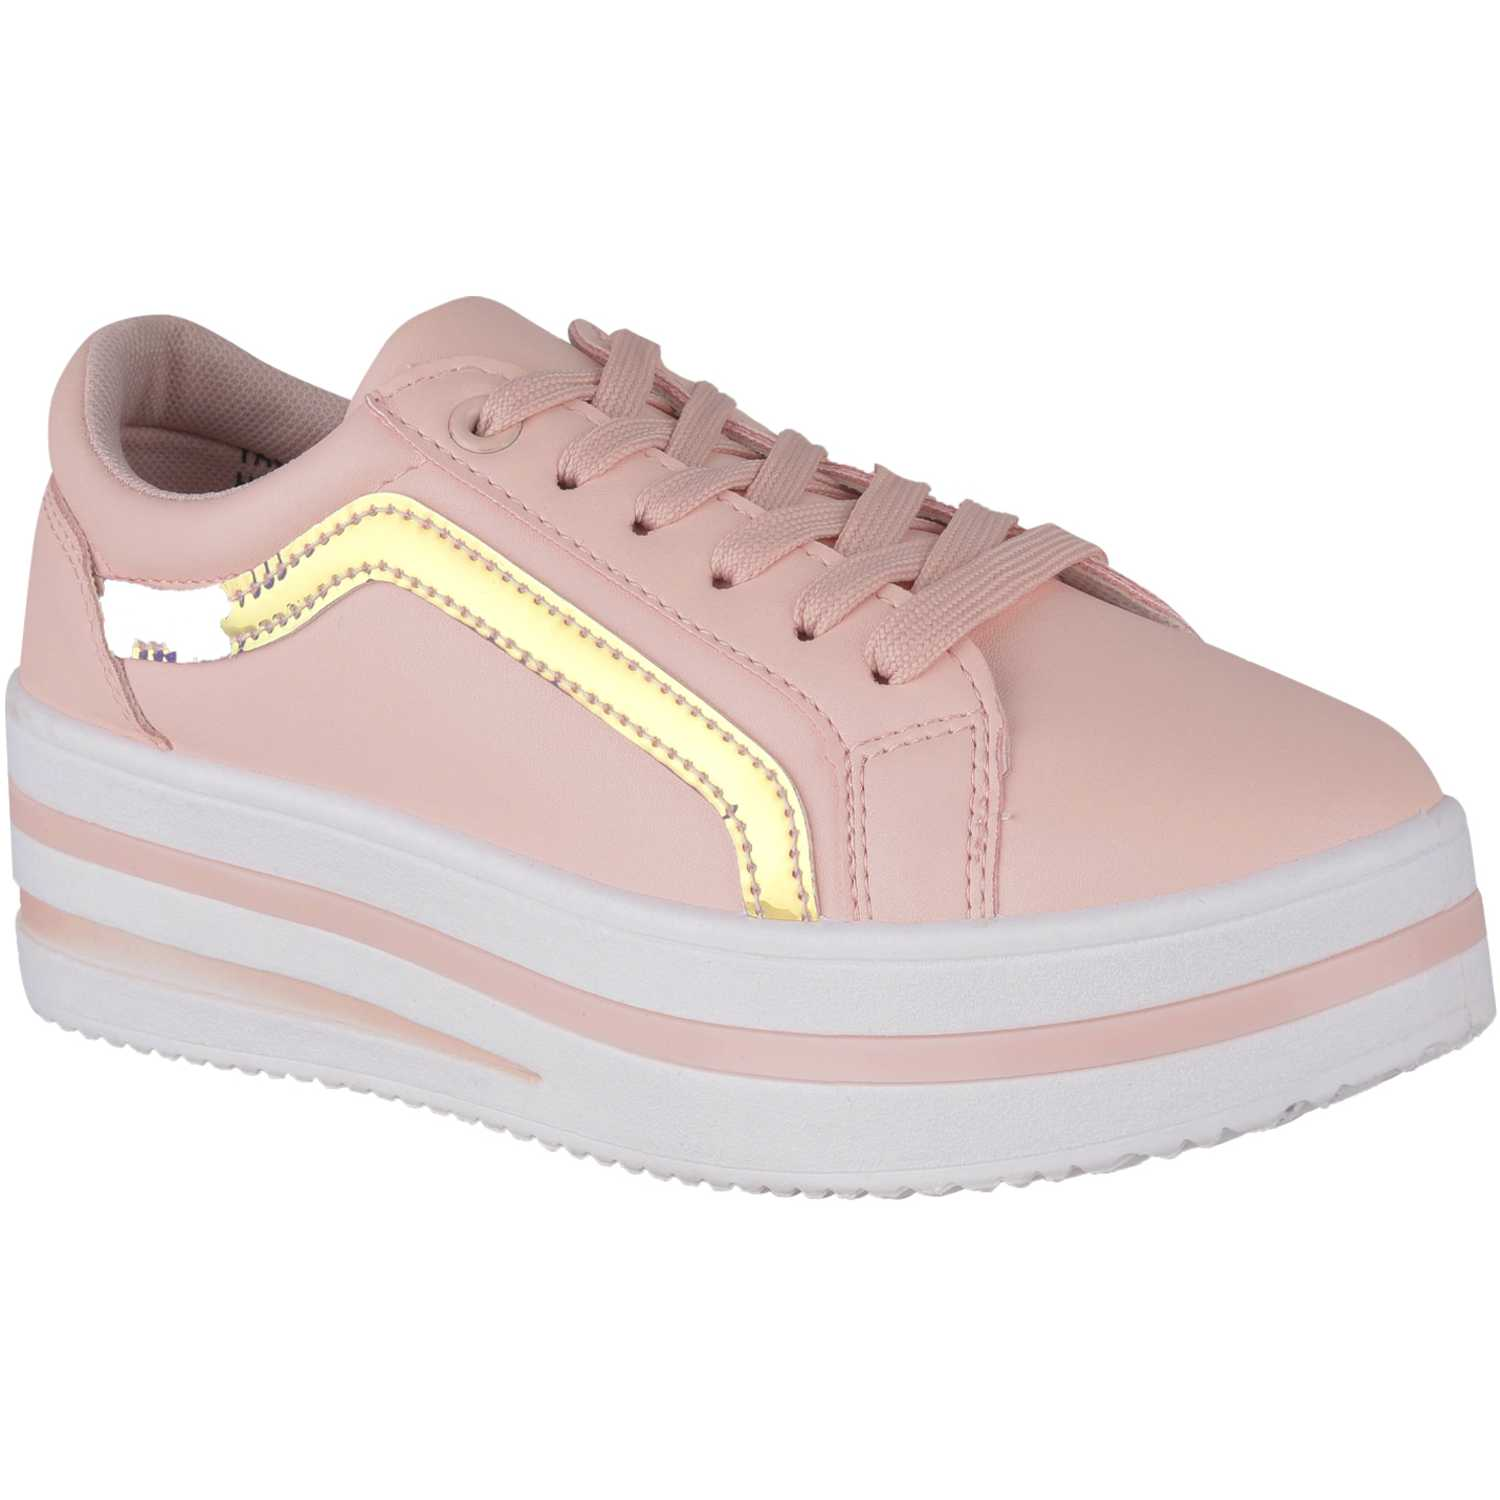 Platanitos zc 871 Rosado Zapatillas Fashion